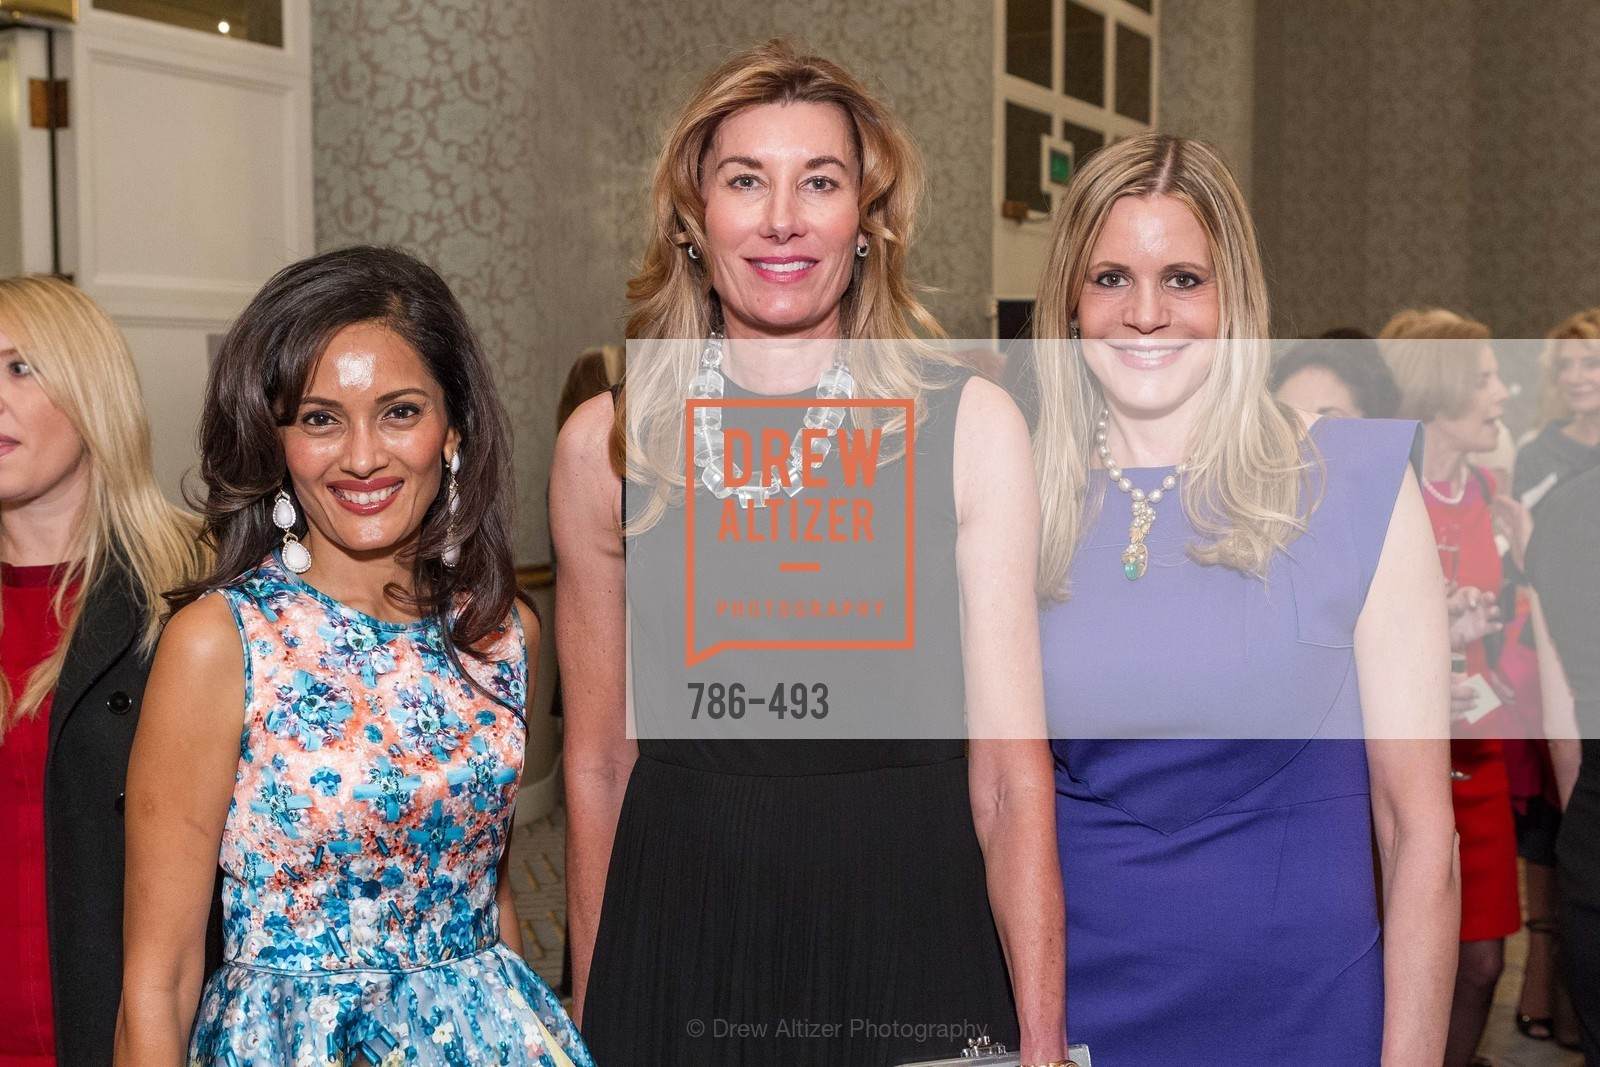 Komal Shah, Susan Dunlevy, Mary Beth Shimmon, SAN FRANCISCO BALLET AUXULIARY 2014 Fashion Show, US. The Fairmont, April 3rd, 2014,Drew Altizer, Drew Altizer Photography, full-service agency, private events, San Francisco photographer, photographer california